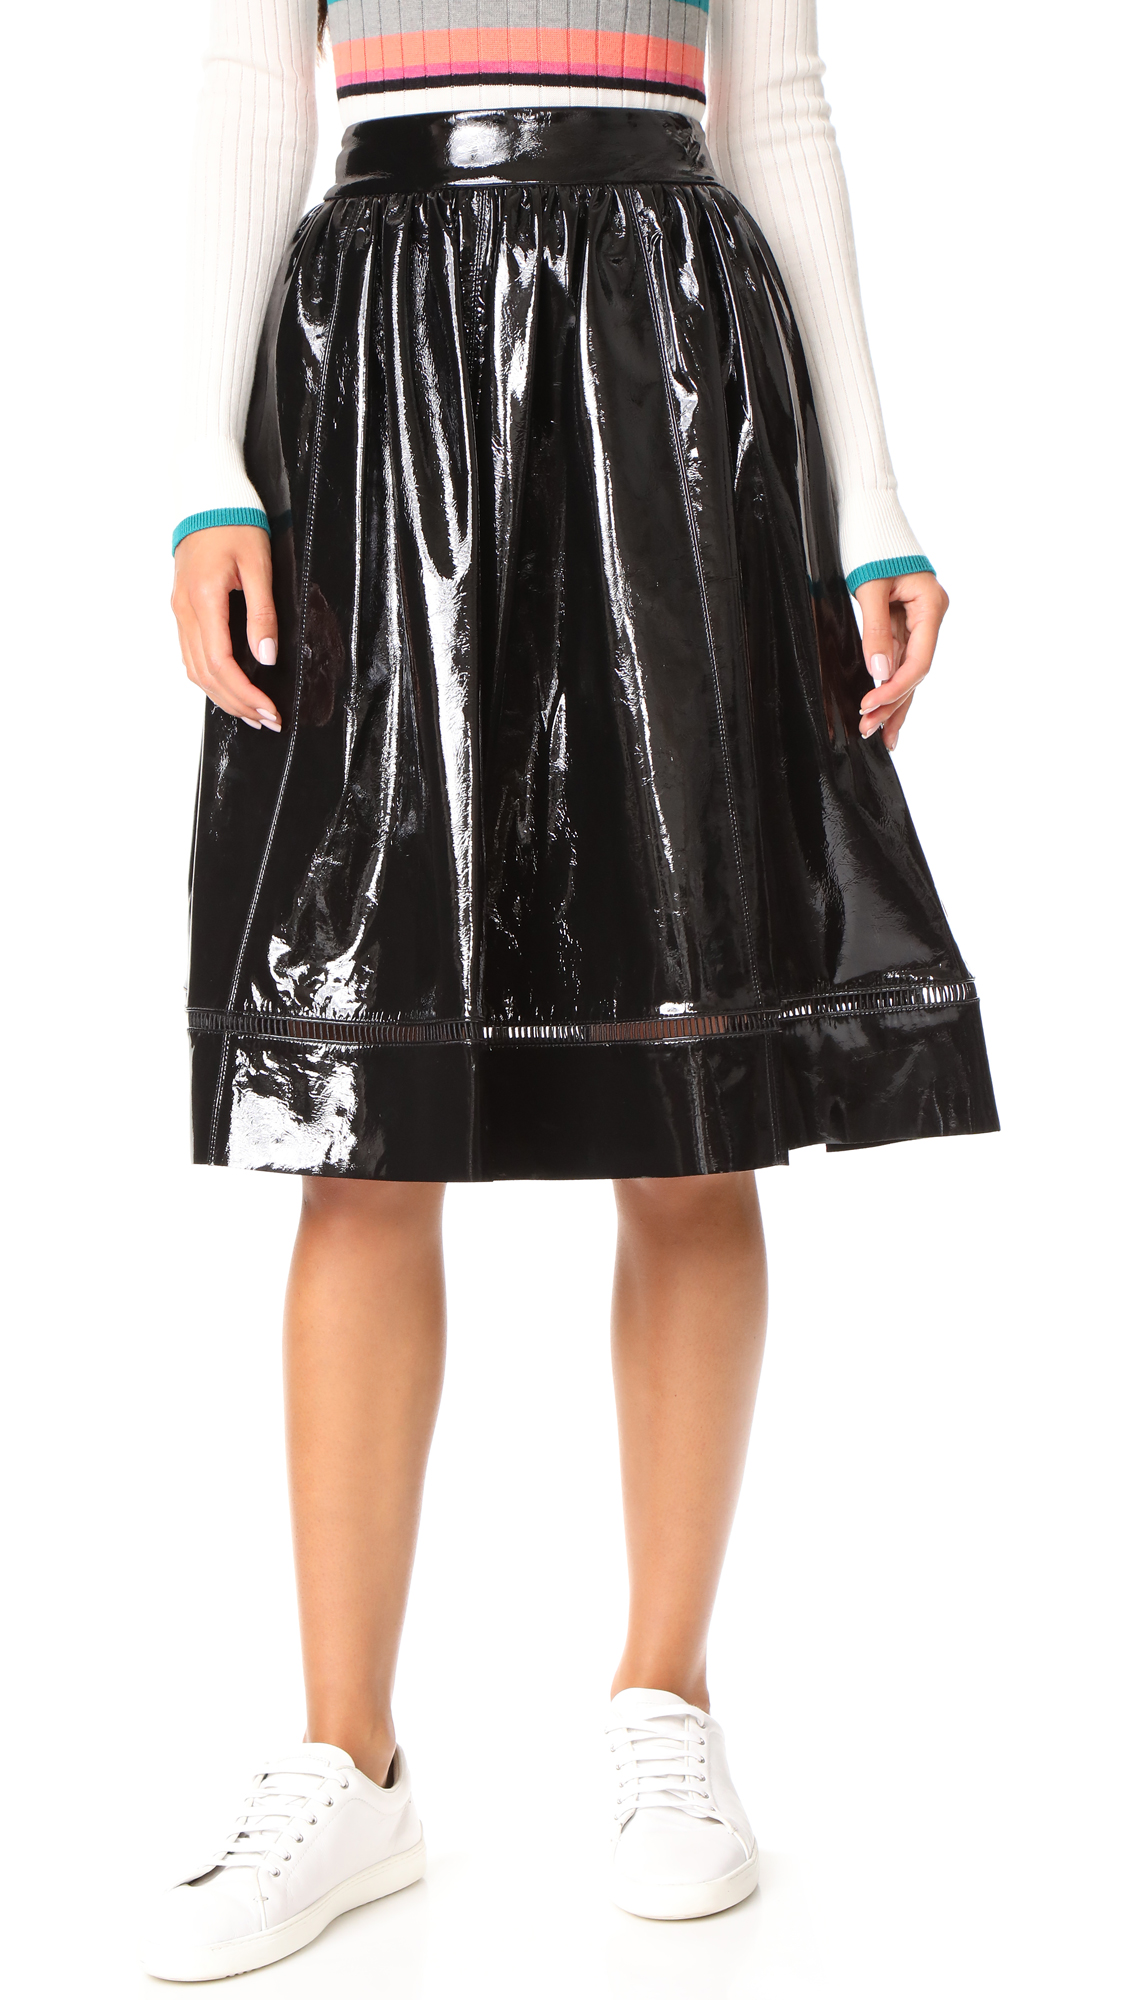 alice + olivia Misty Patent Leather Skirt - Black